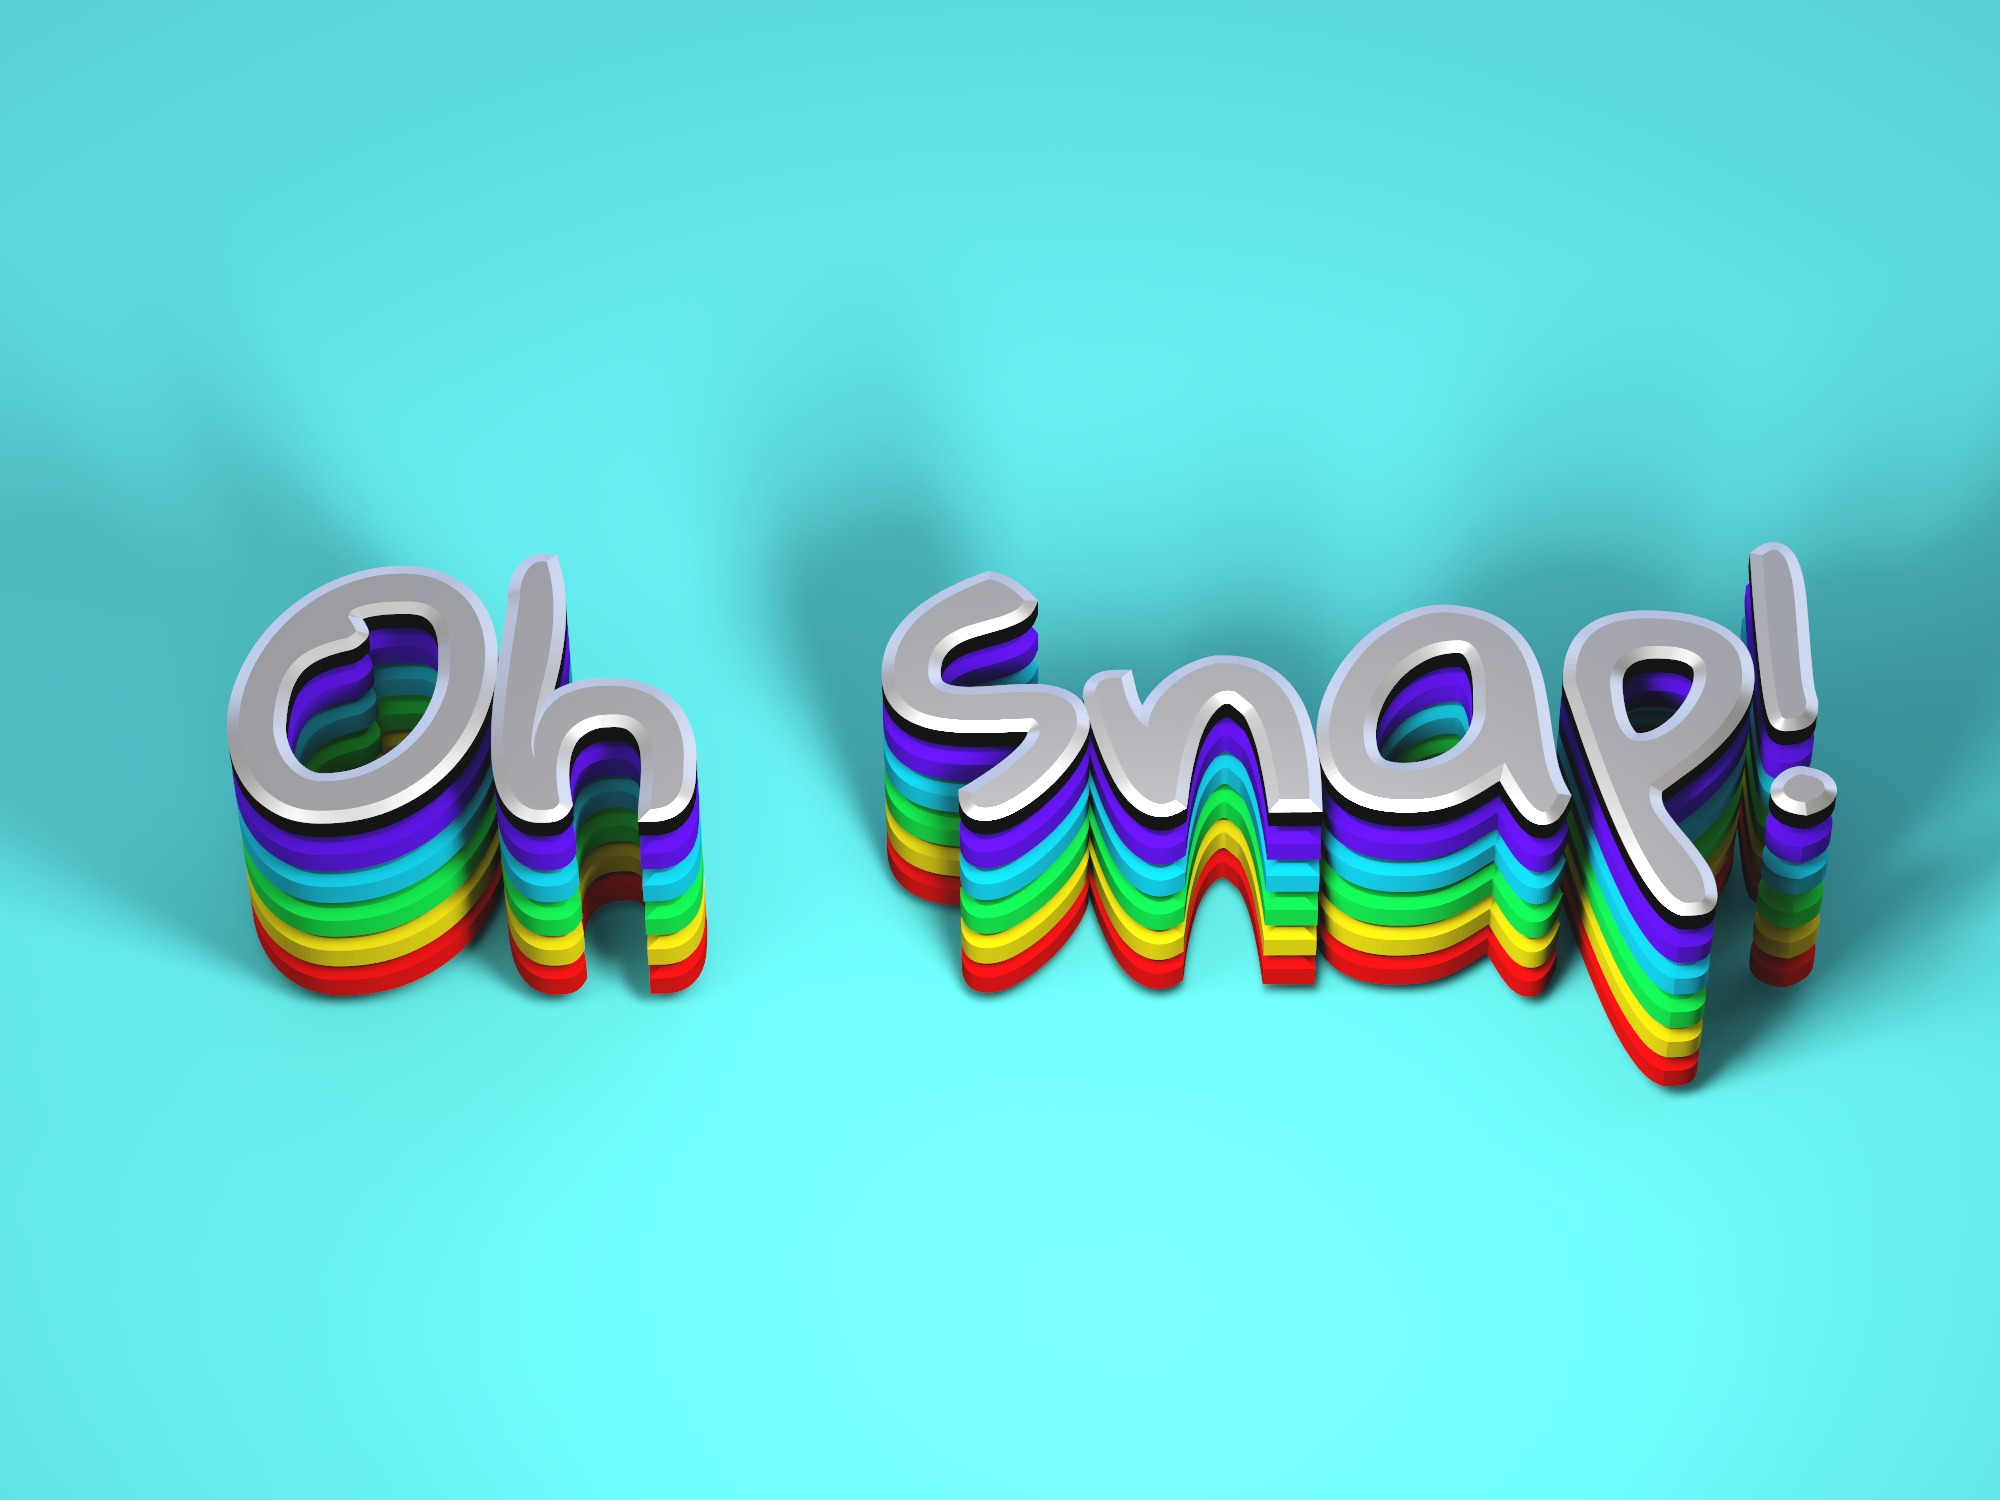 Oh snap! - 3D design by VECTARY Jul 11, 2018